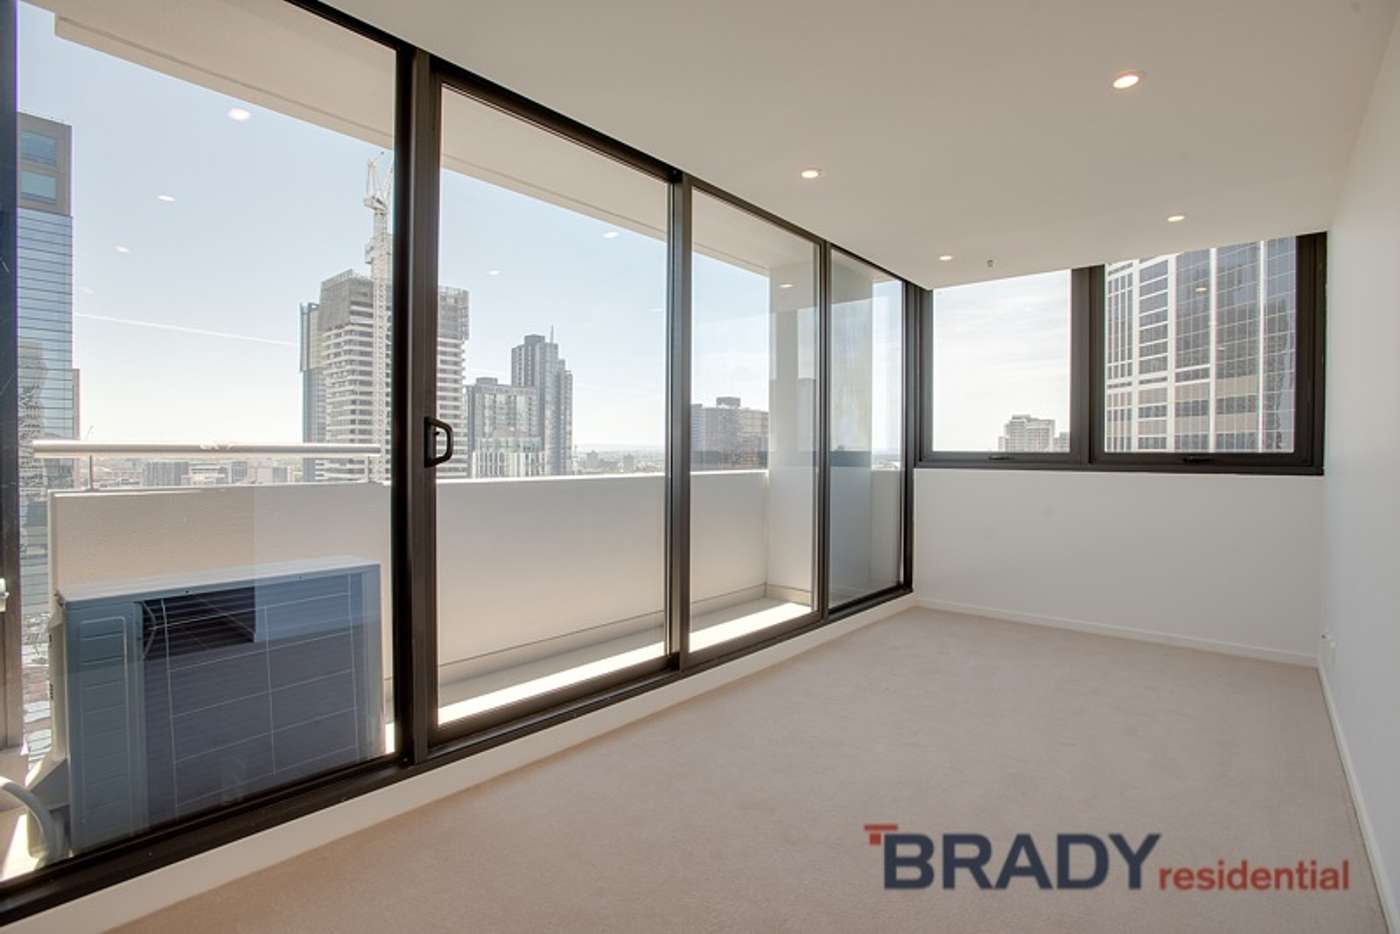 Sixth view of Homely apartment listing, 2807/8 Sutherland Street, Melbourne VIC 3000